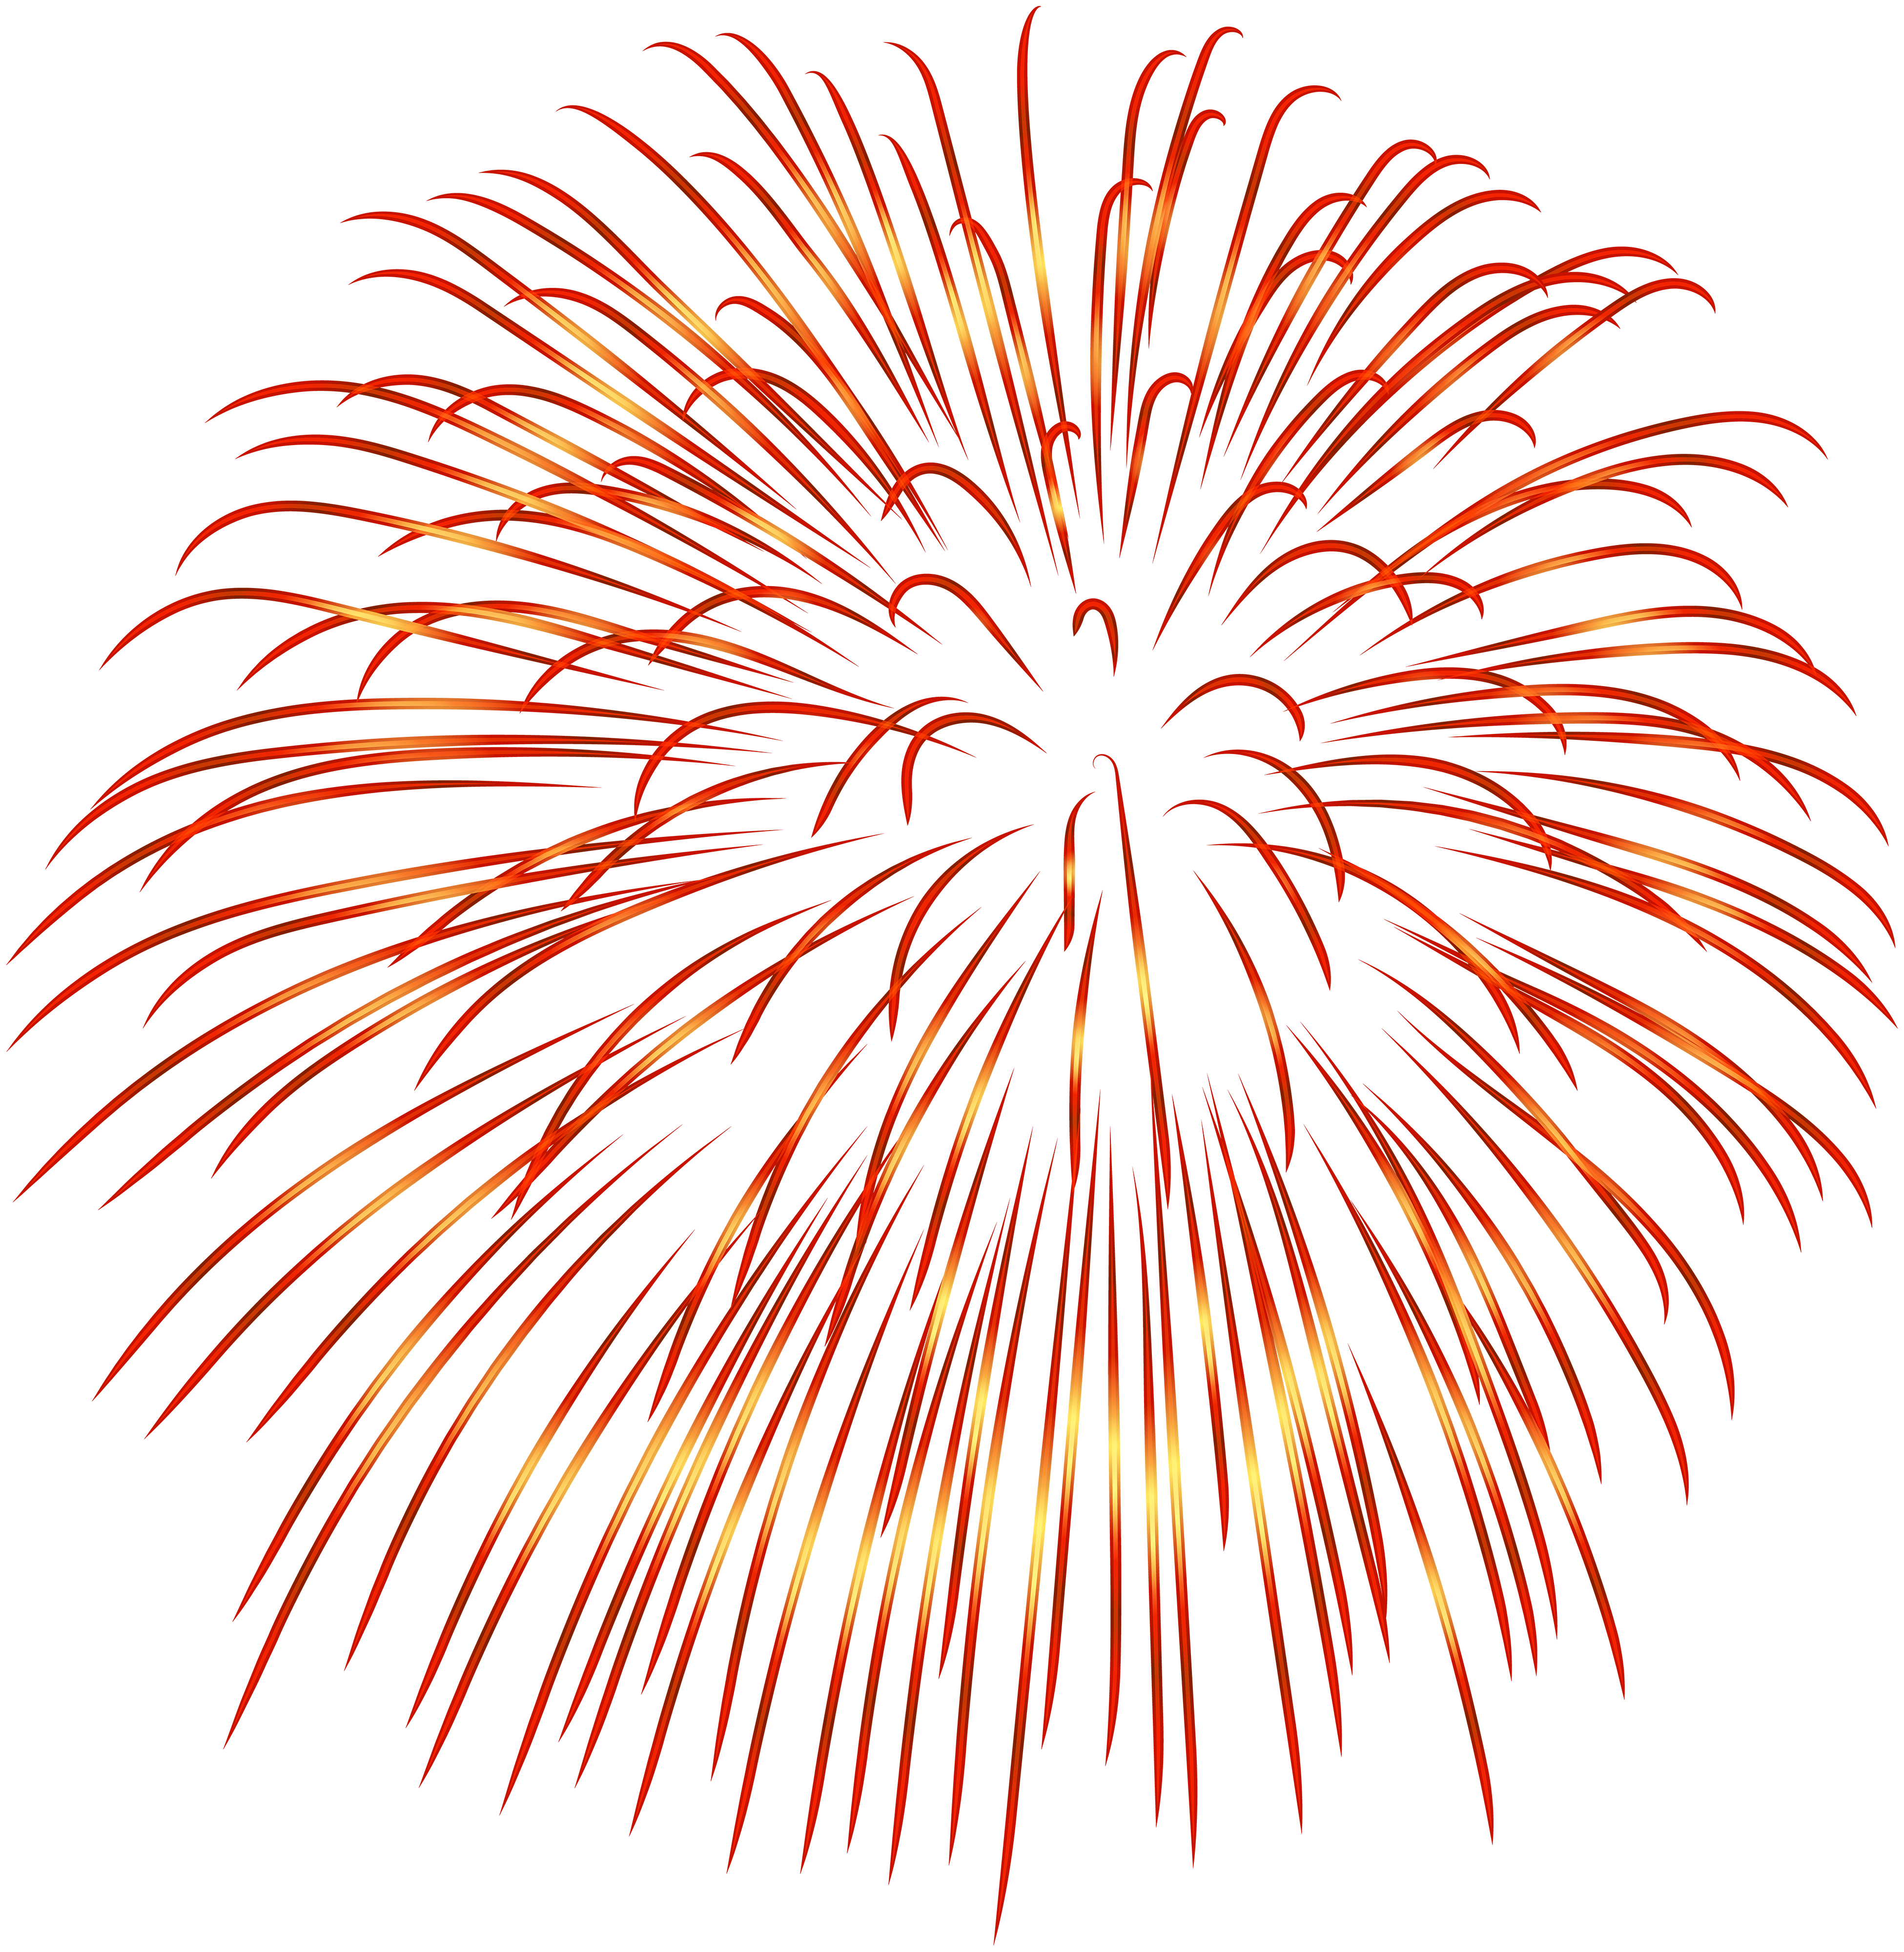 Firework star clipart. Red transparent png image